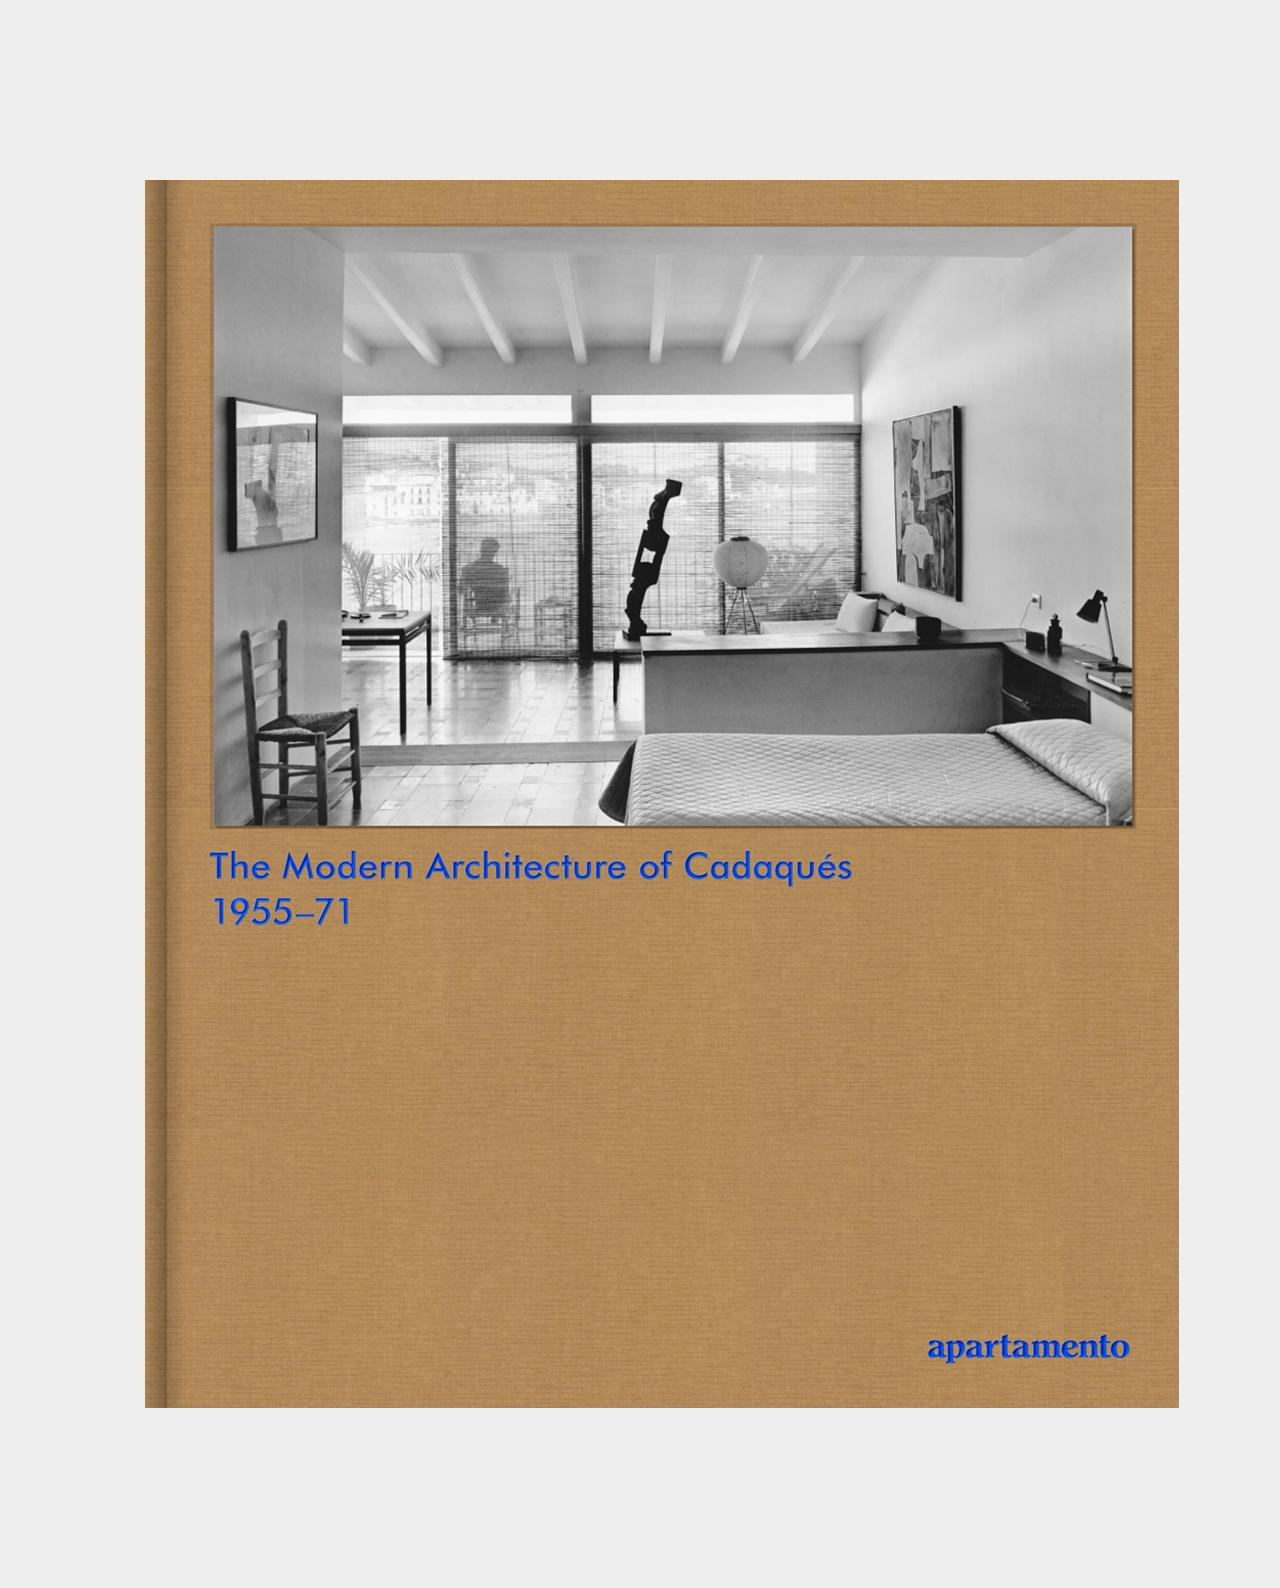 THE MODERN ARCHITECTURE OF CADAQUES: 1955-71